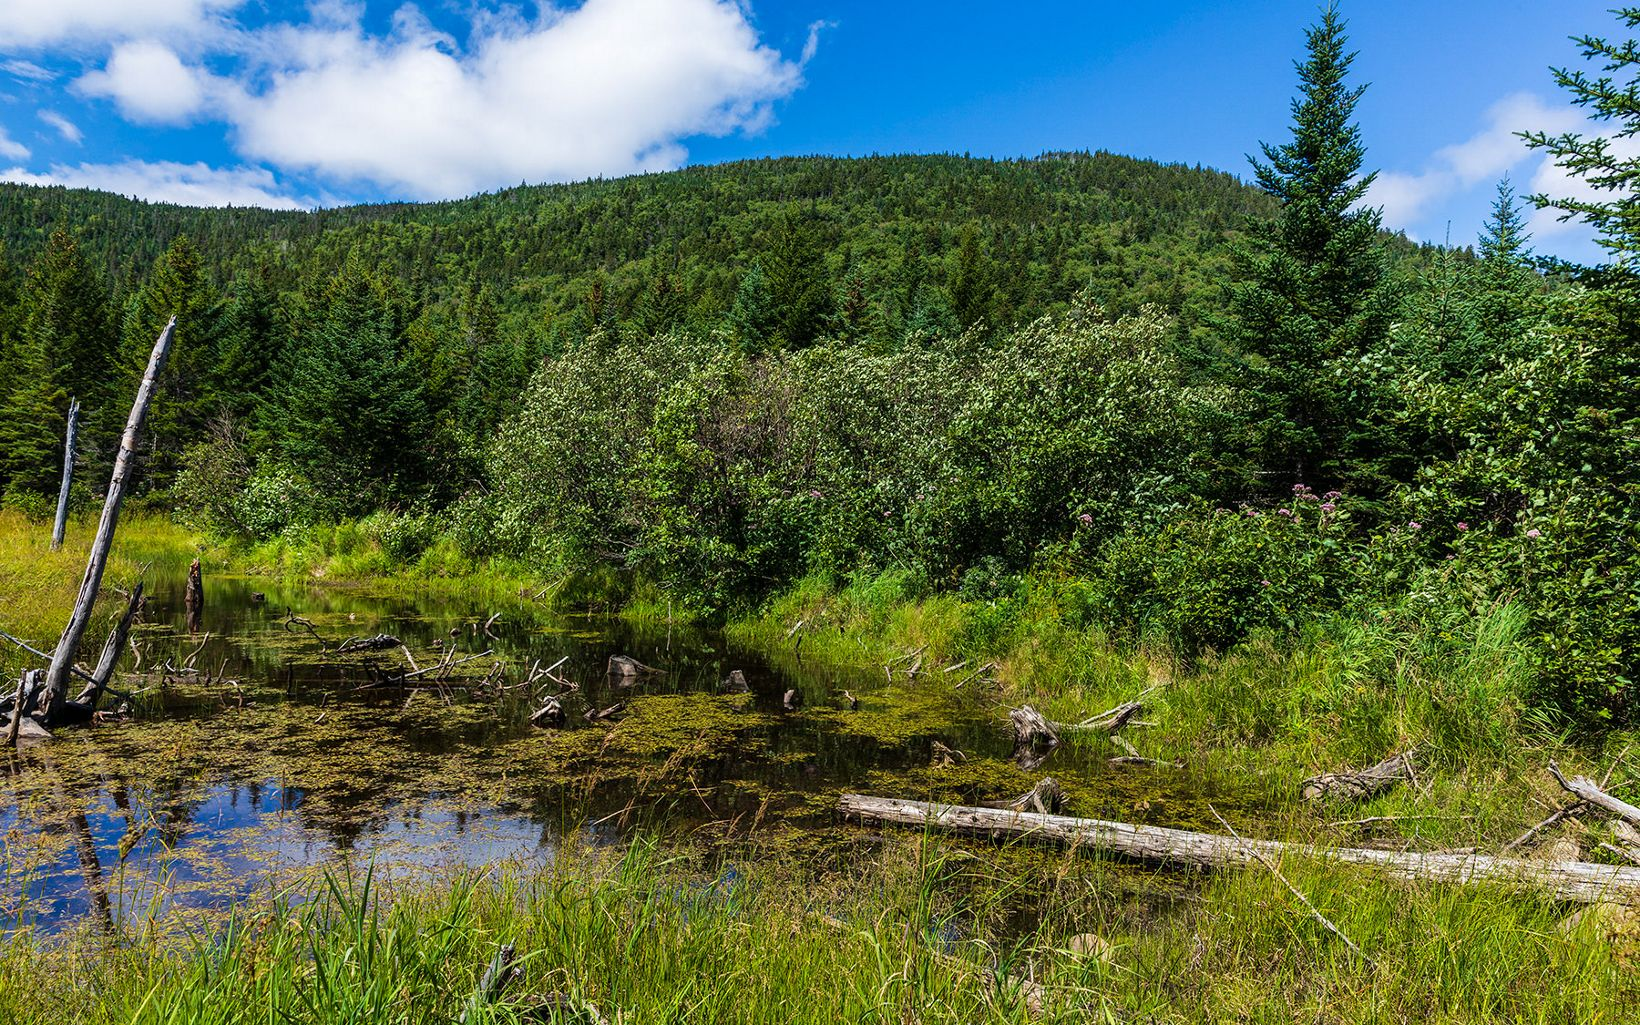 A quiet beaver pond with dead tree snags sits below a forested mountain.